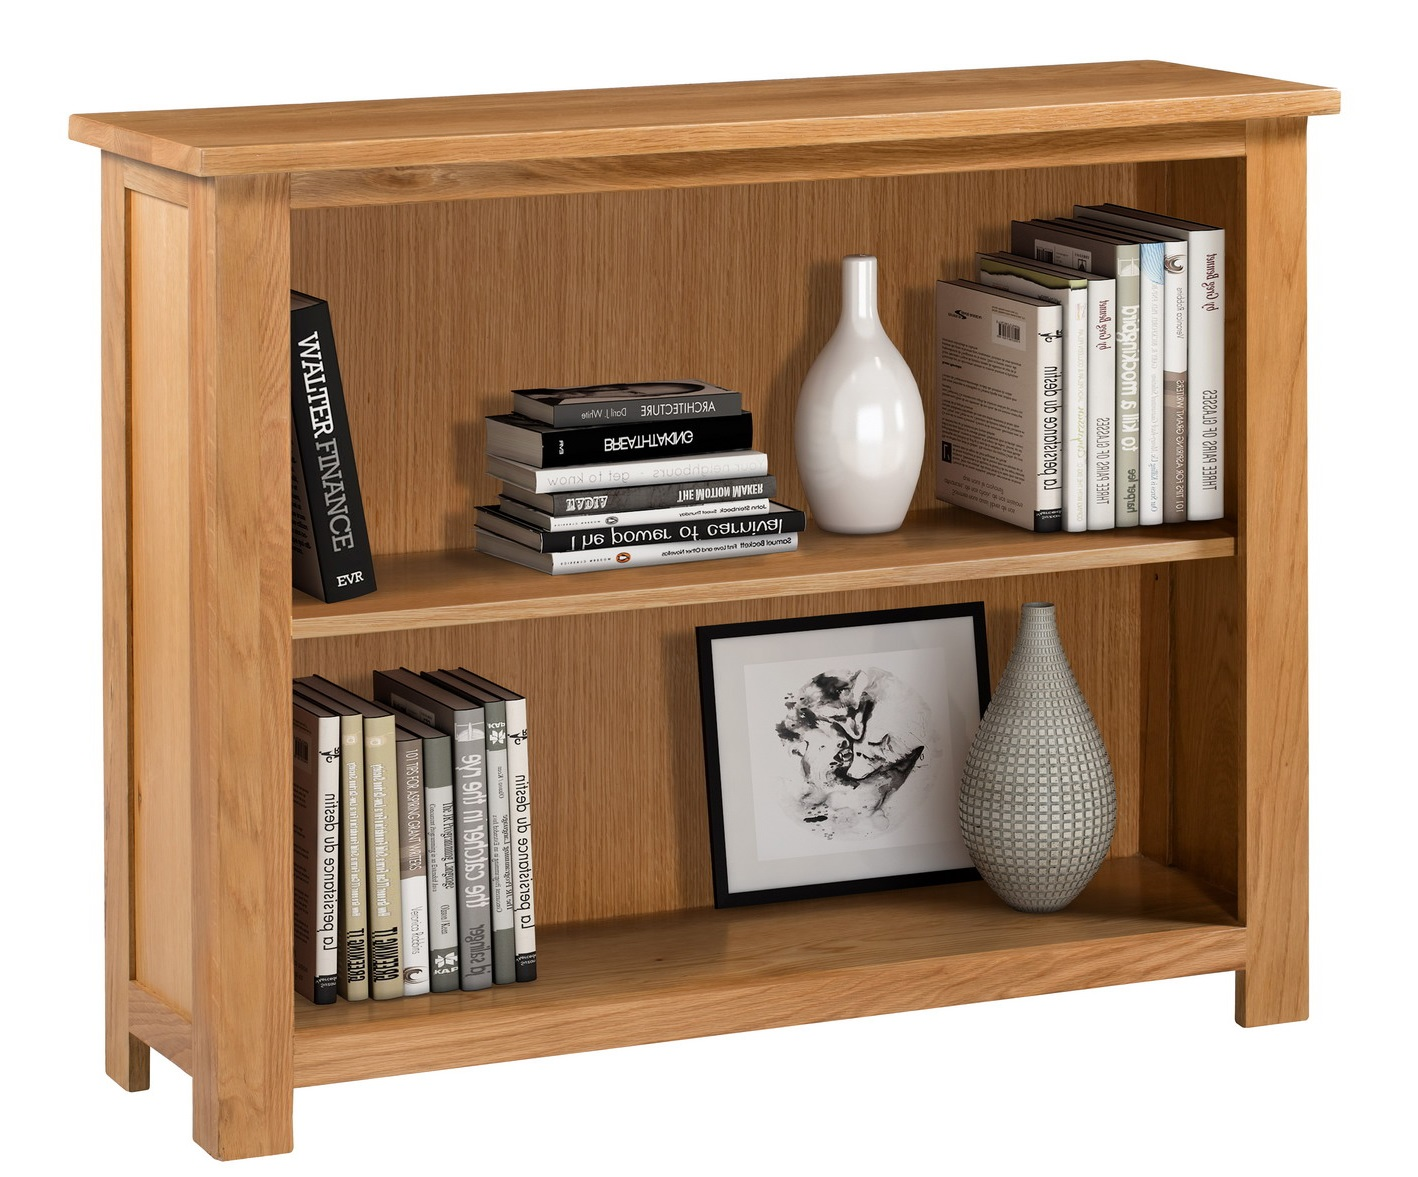 Details About Wide And Low Oak Bookcase Wooden Storage Bookshelf Solid Wood Shelving Unit